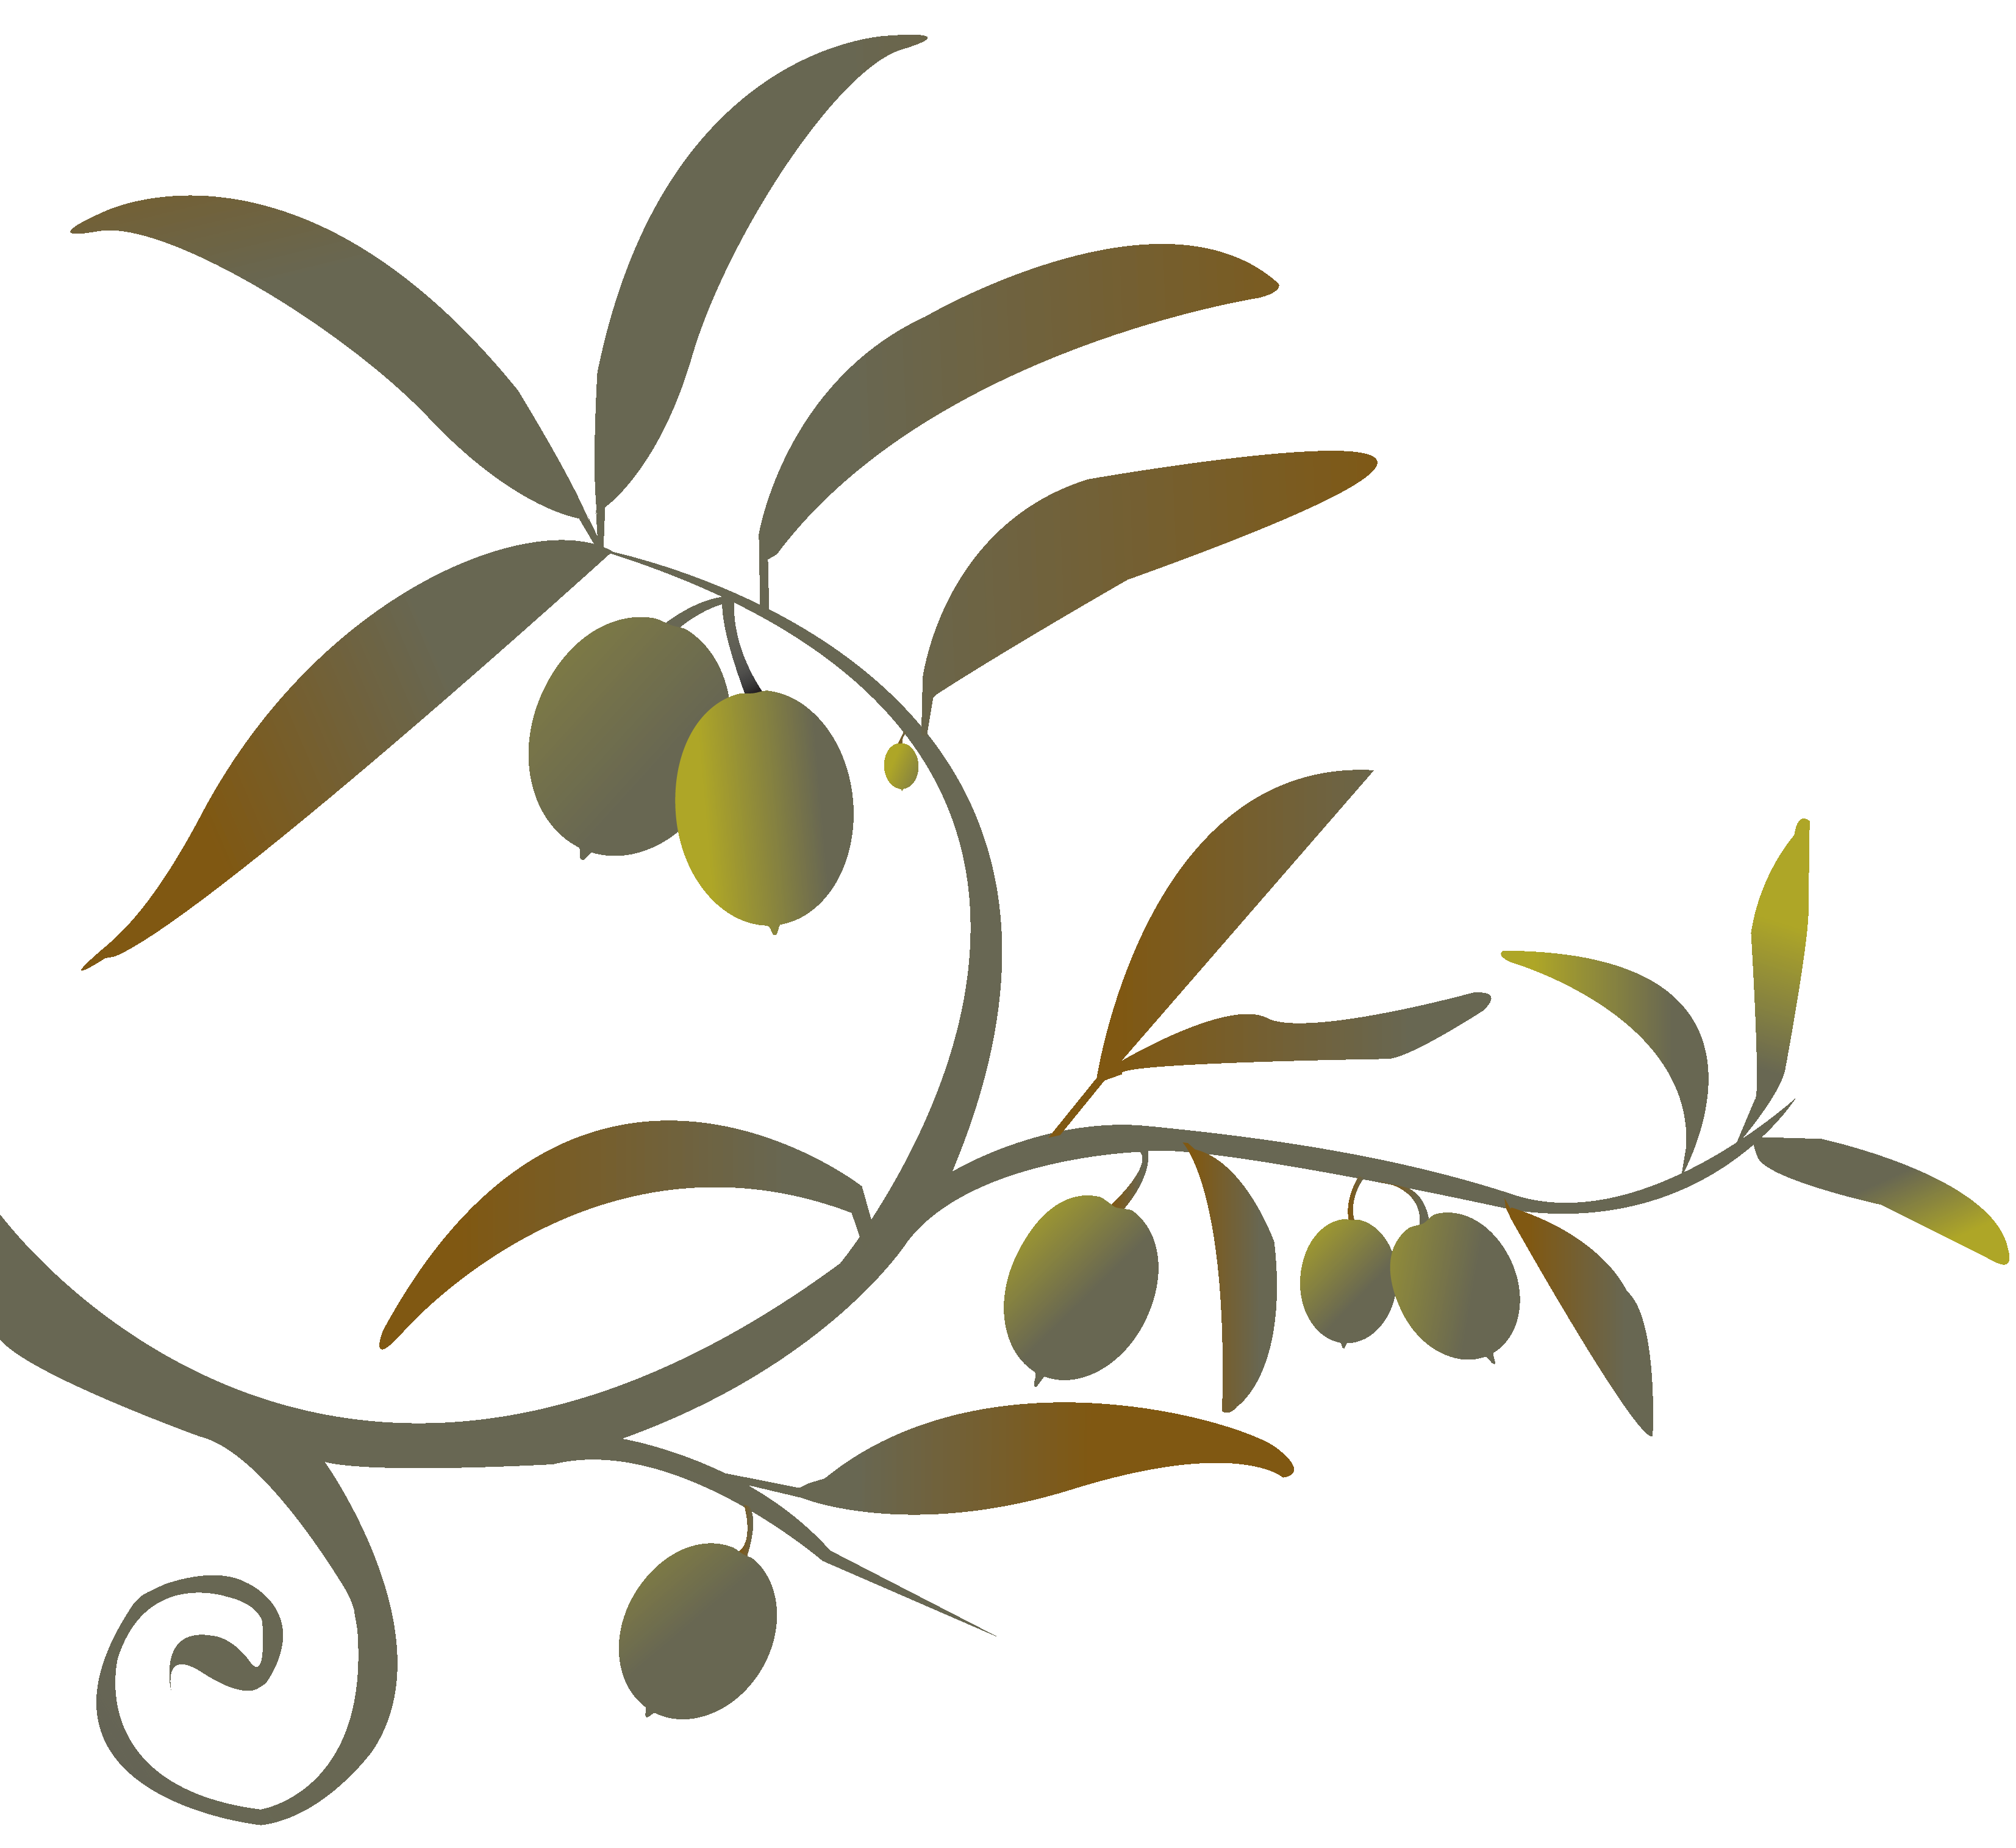 Olive branch png. Siren song of the